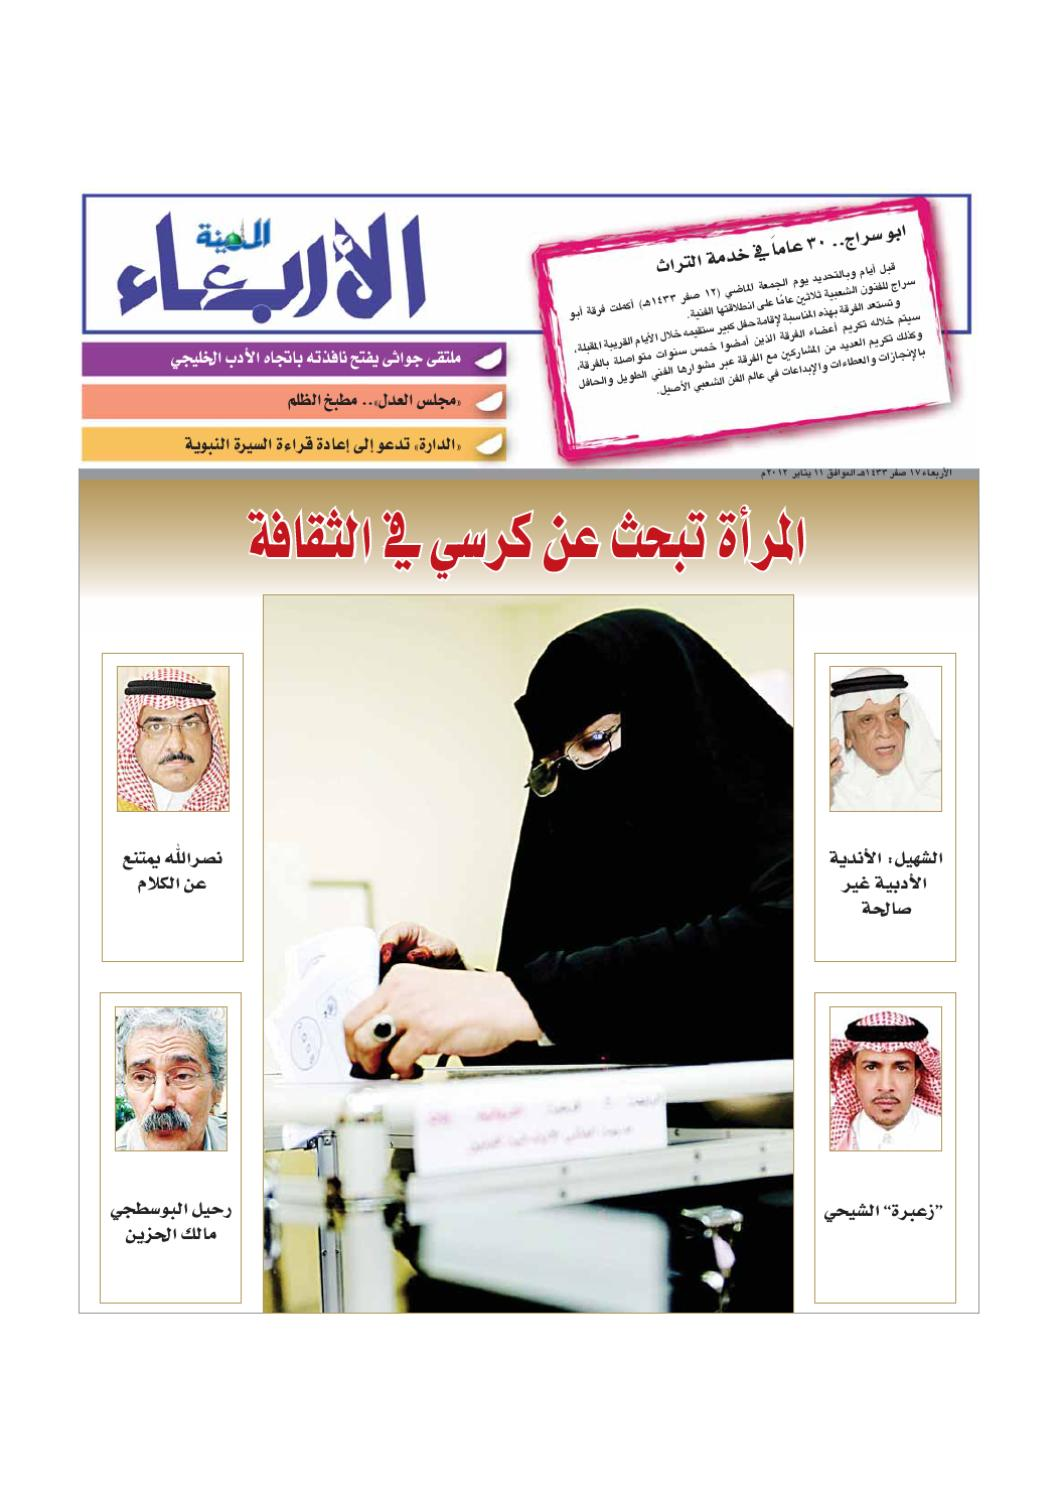 ead3c5a72 al-arbaa 20120111 by Al-Madina Newspaper - issuu